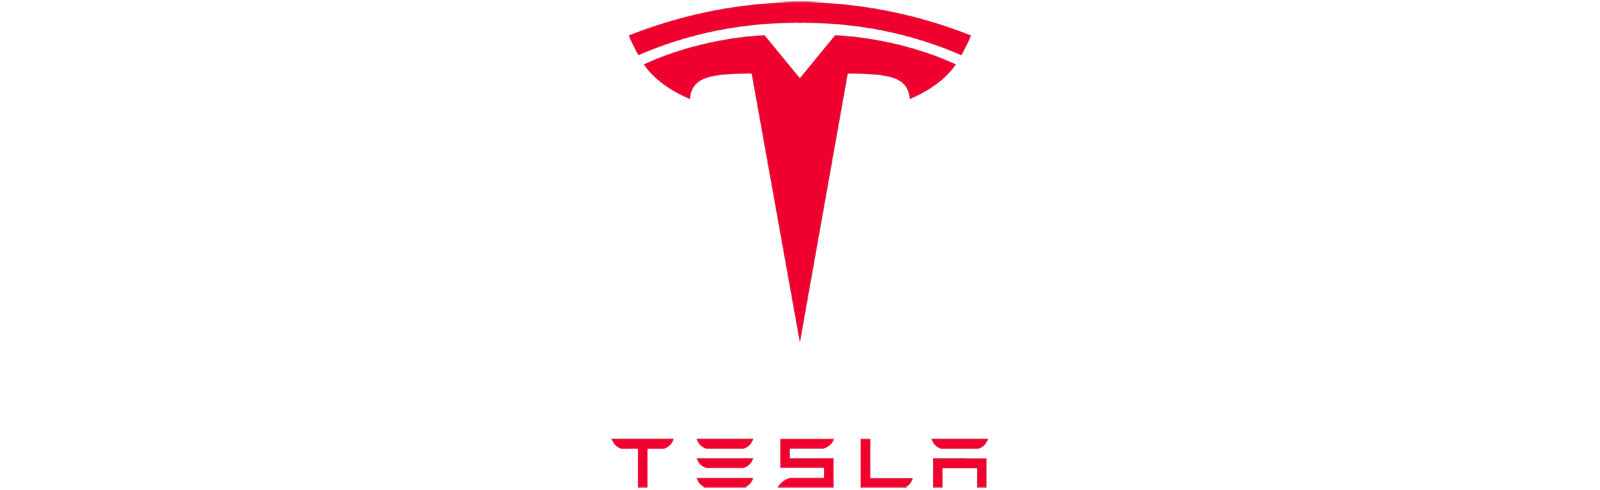 Tesla produced and delivered over 200,000 vehicles in Q2 of 2021